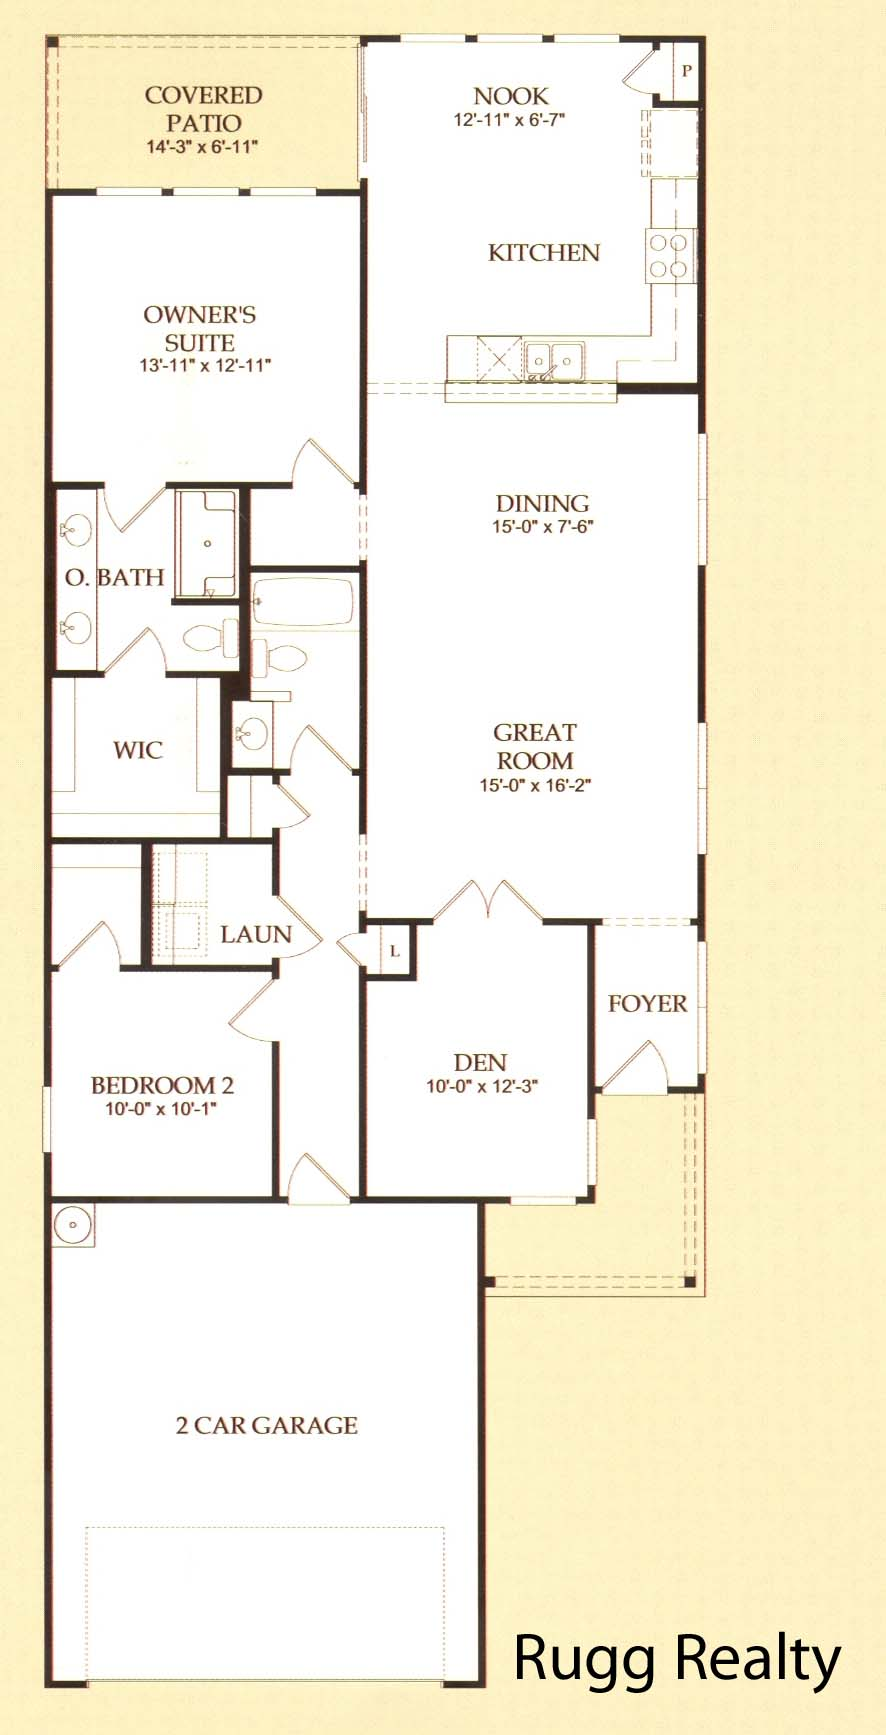 Pulte homes floor plans pulte home plans smalltowndjs com for Brand new house plans